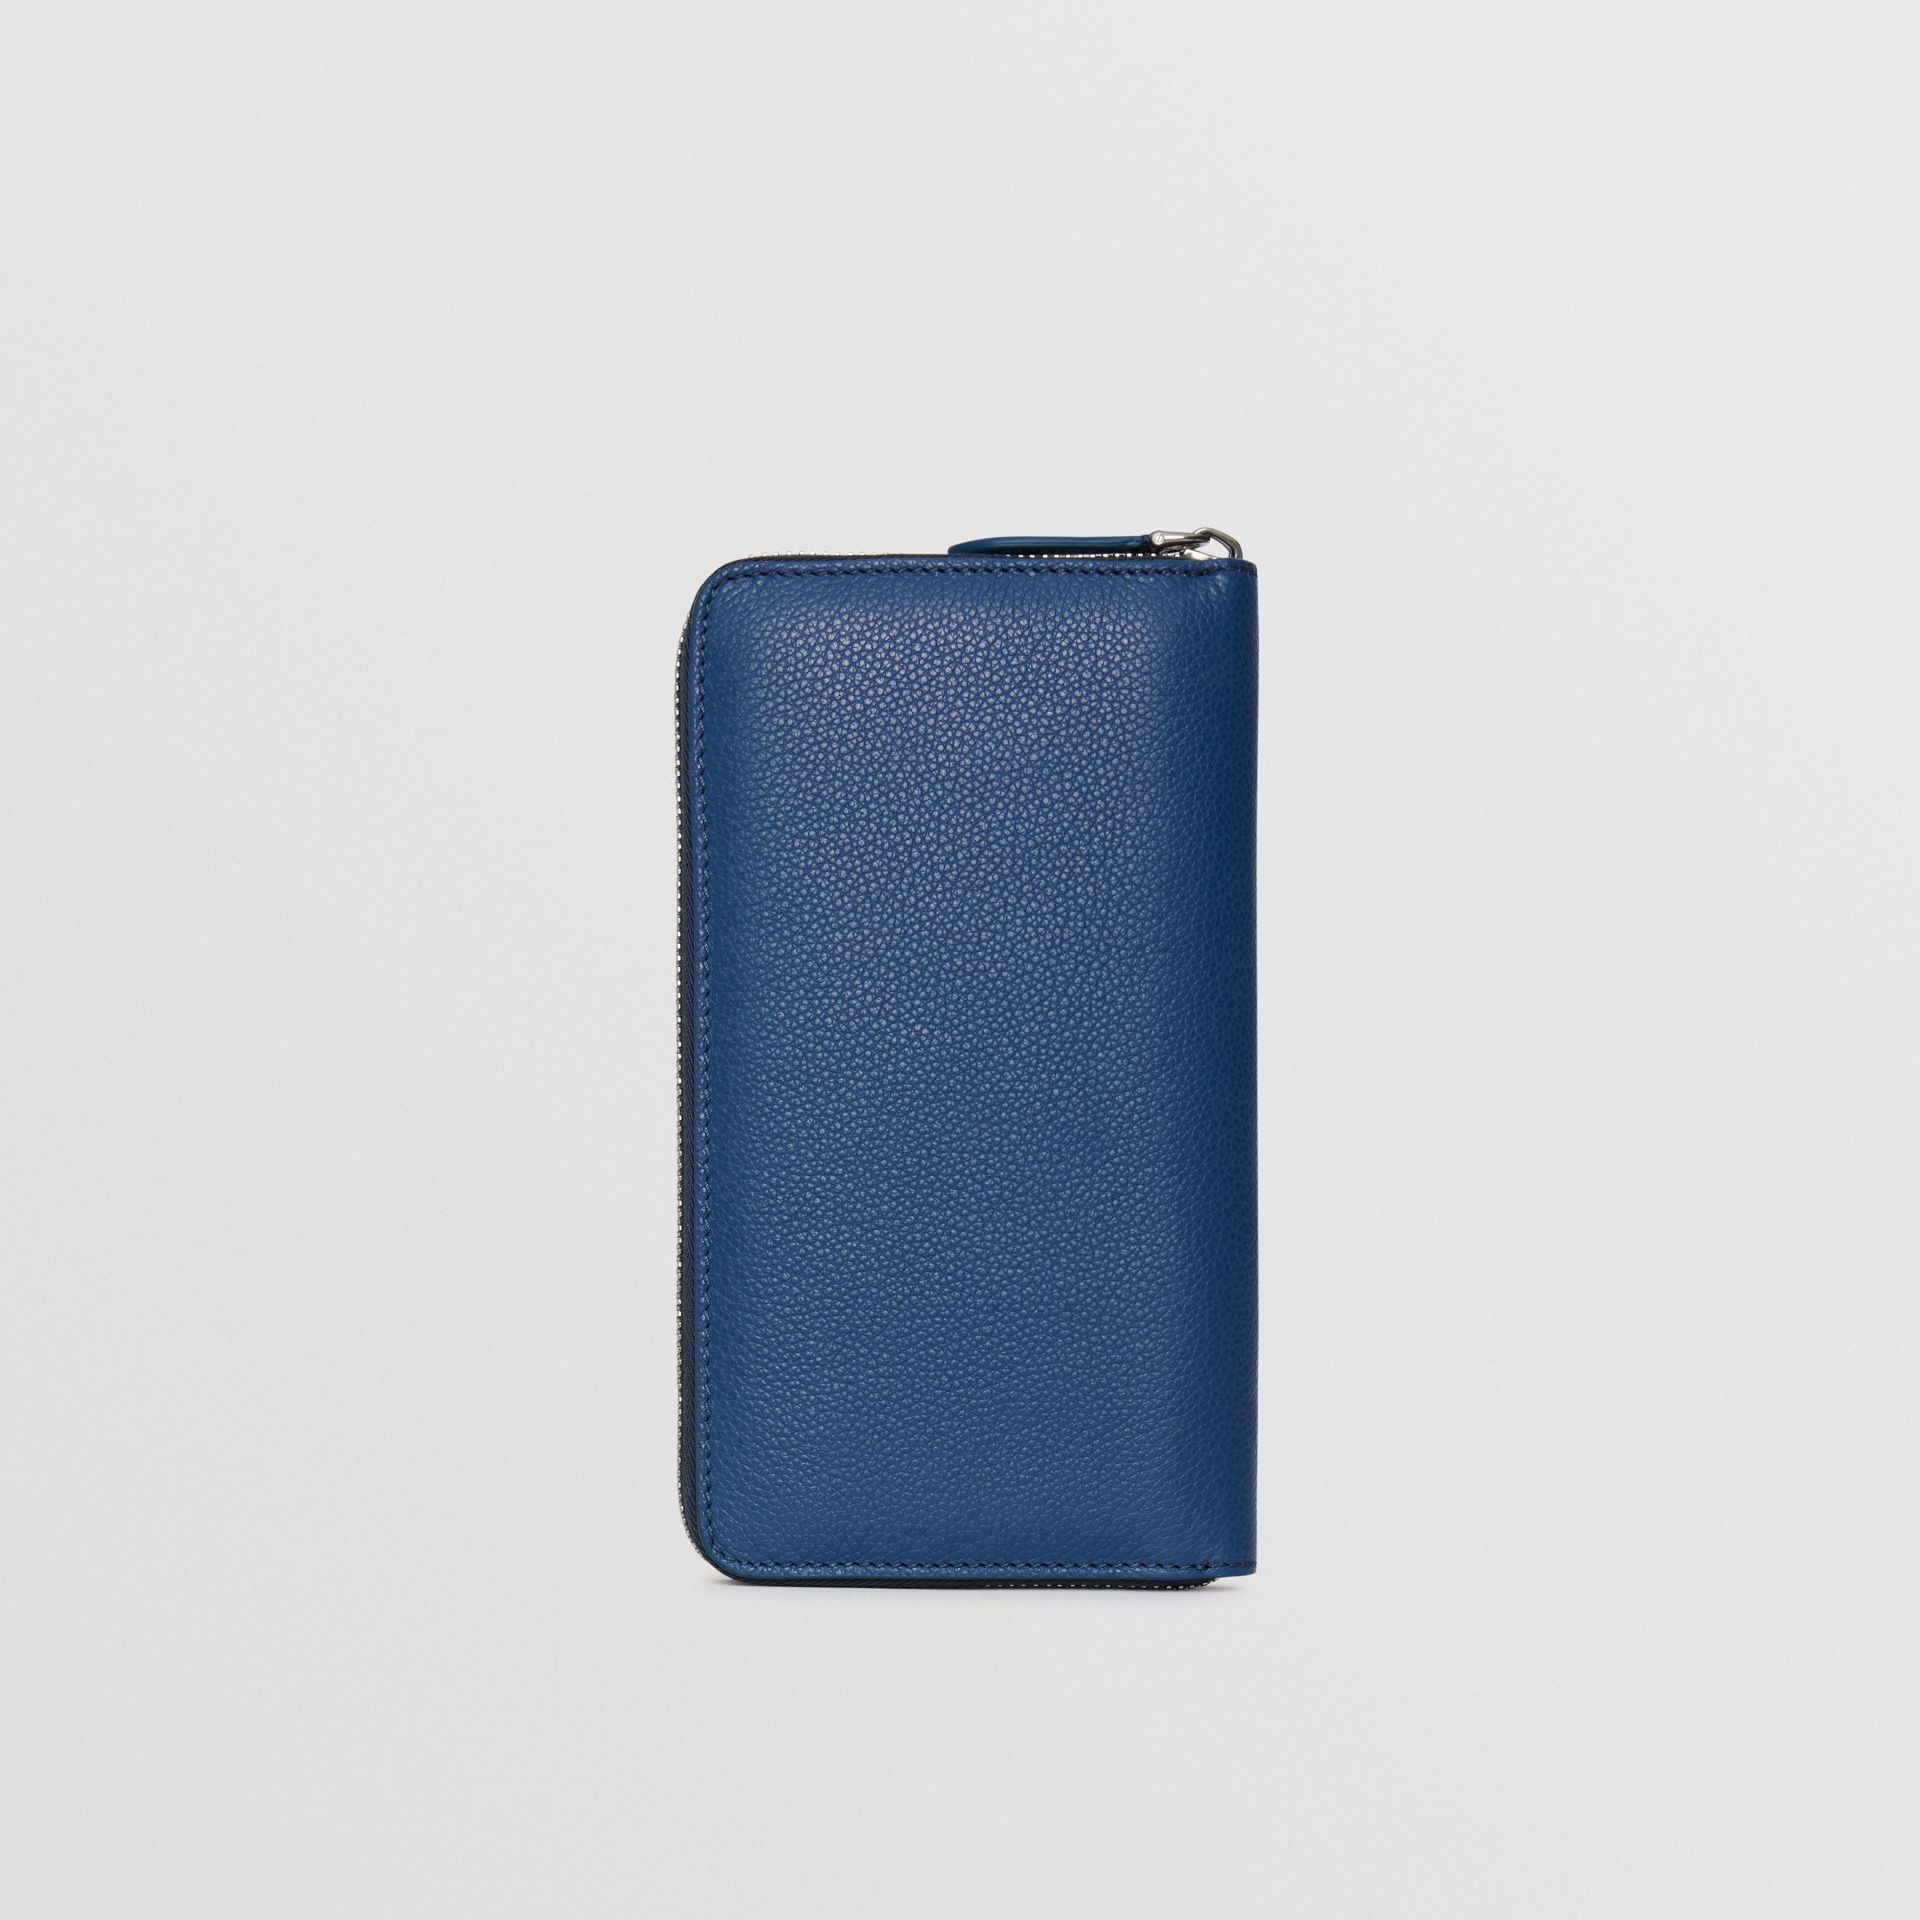 Grainy Leather Ziparound Wallet in Bright Ultramarine - Men | Burberry Hong Kong - gallery image 5